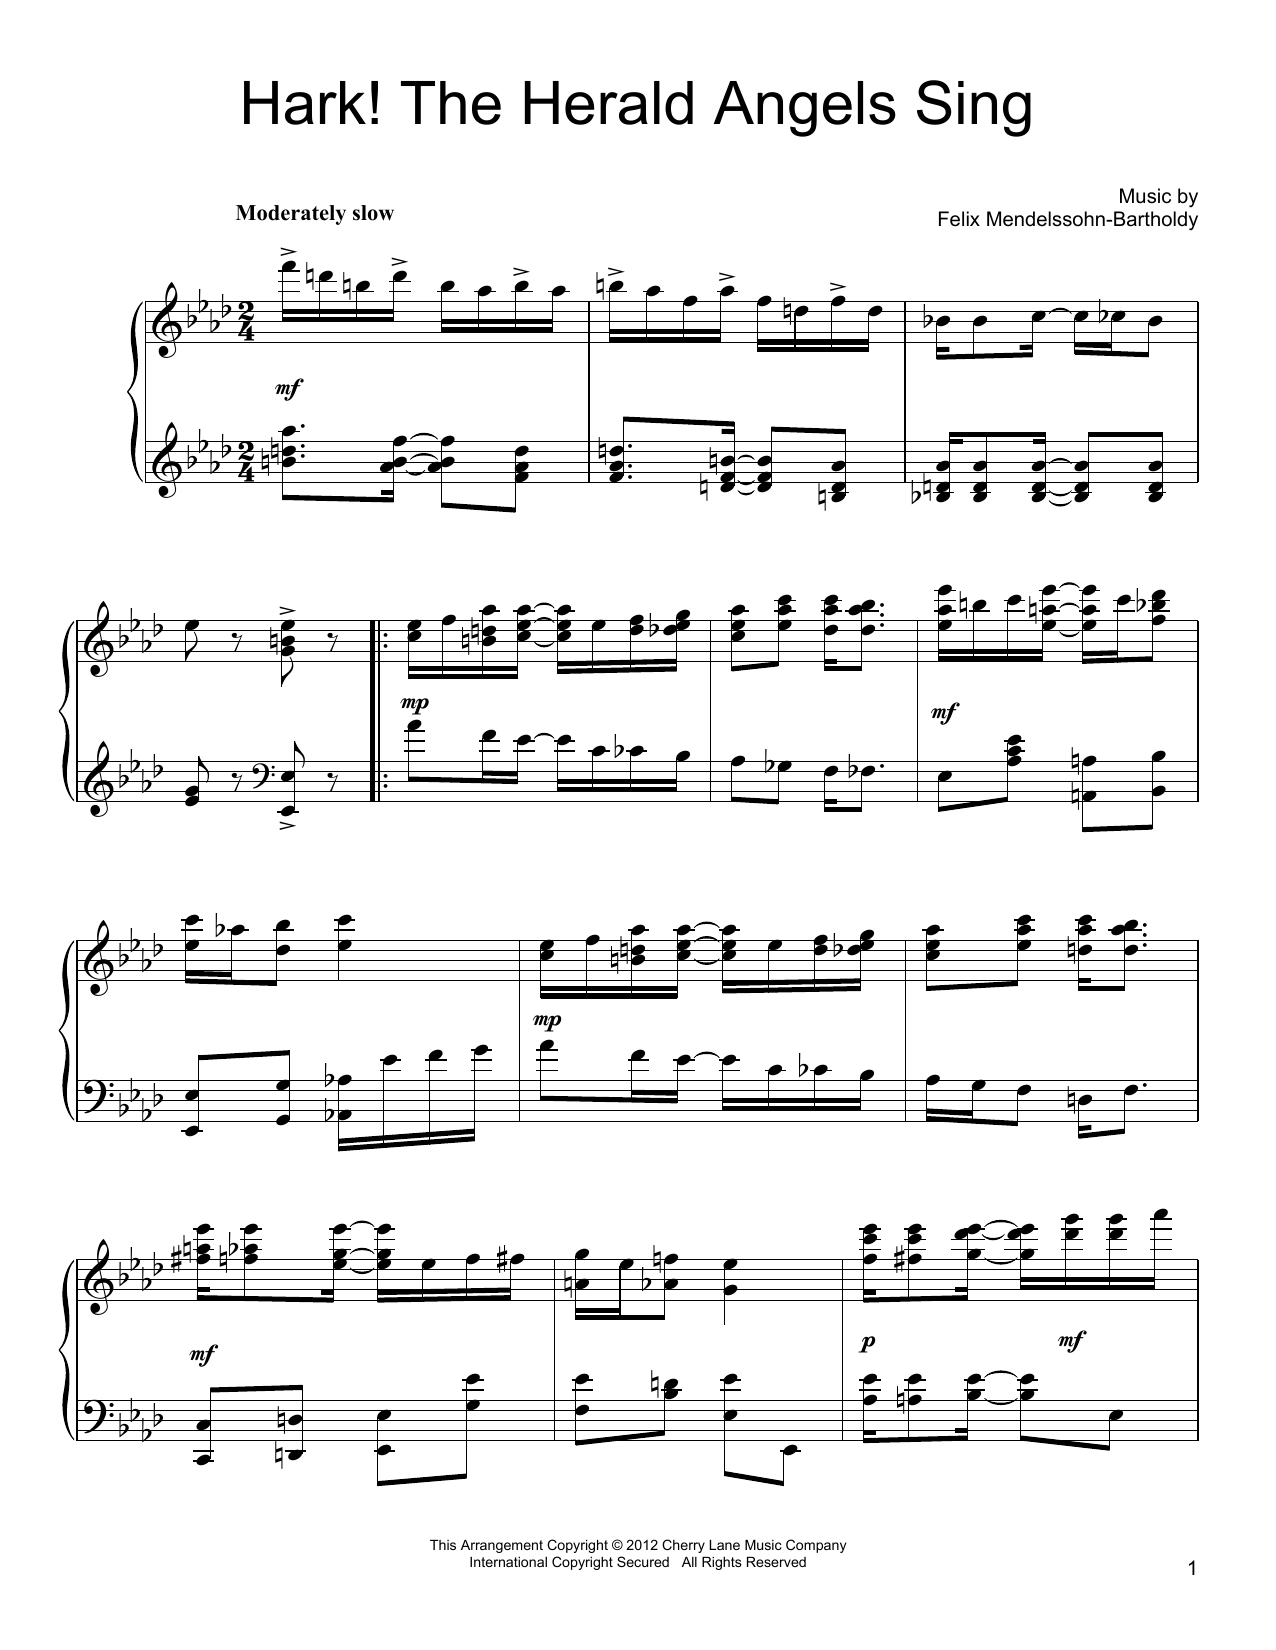 Felix Mendelssohn-Bartholdy Hark! The Herald Angels Sing sheet music notes and chords. Download Printable PDF.